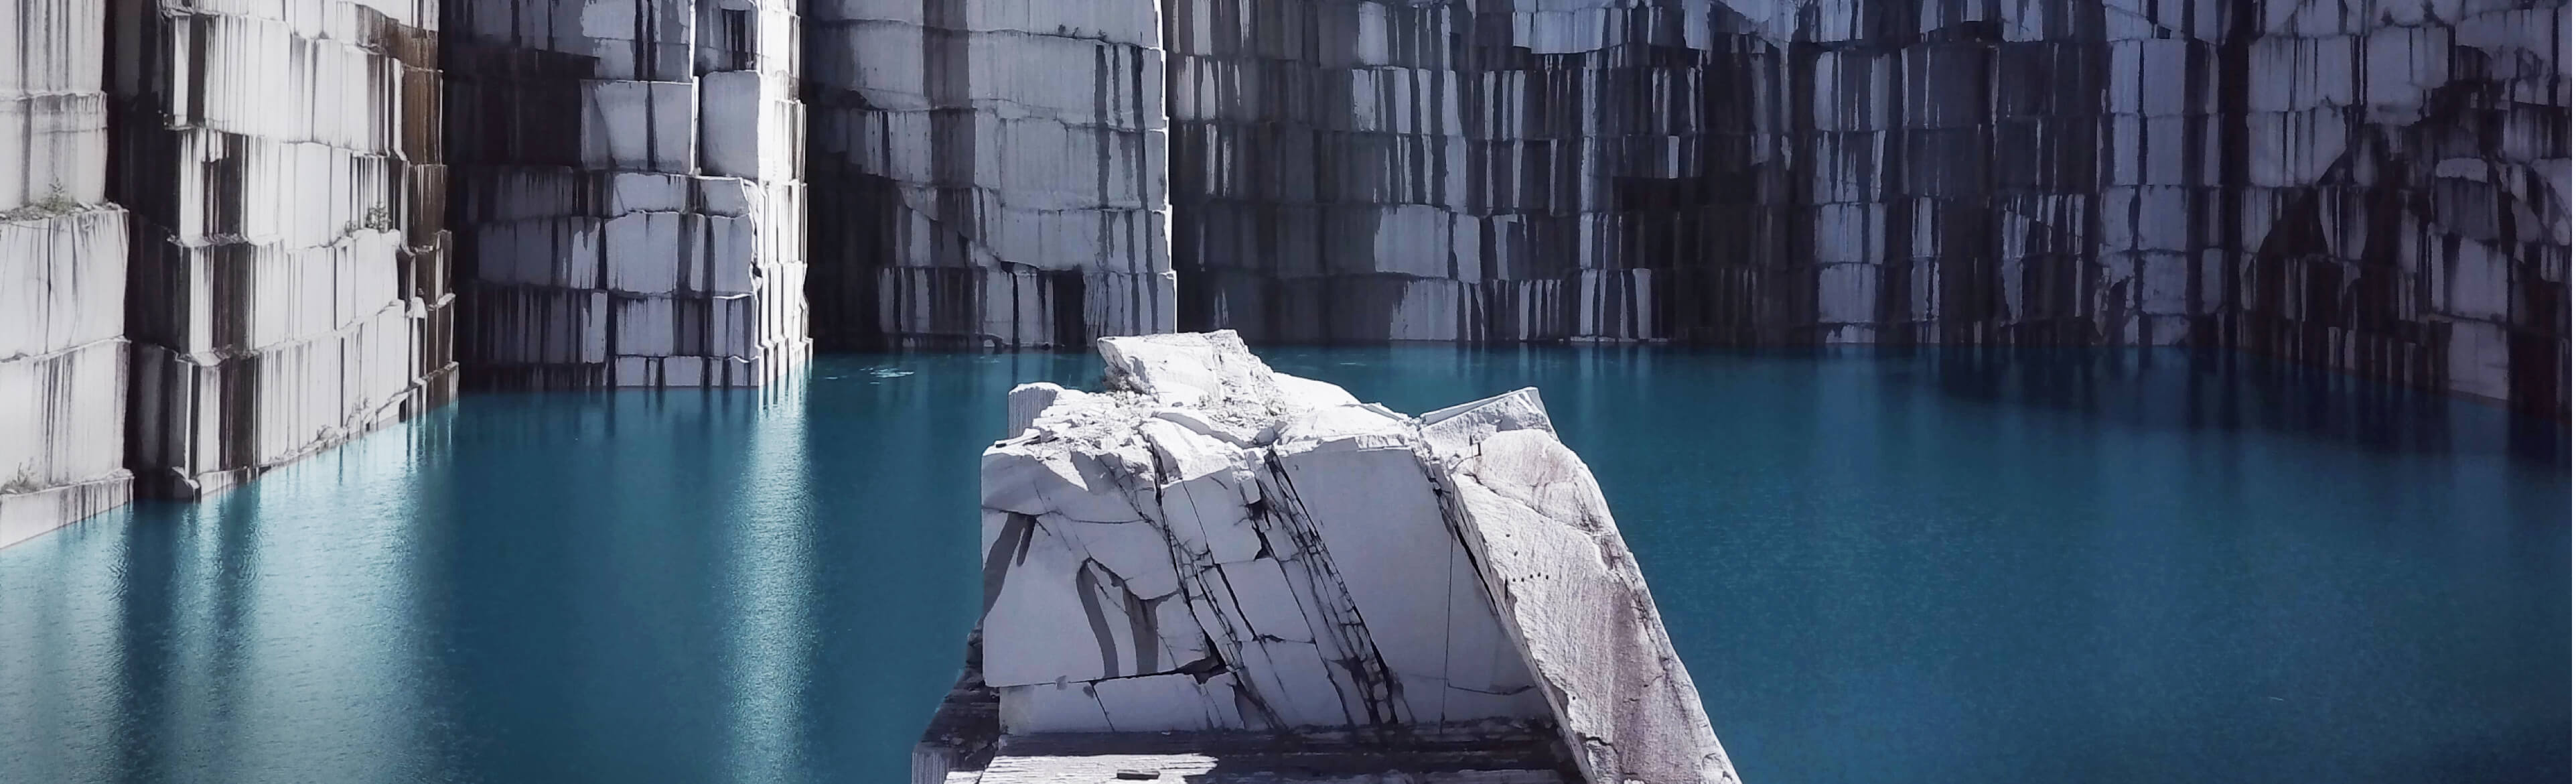 Rock of Ages Vermont Granite Quarry